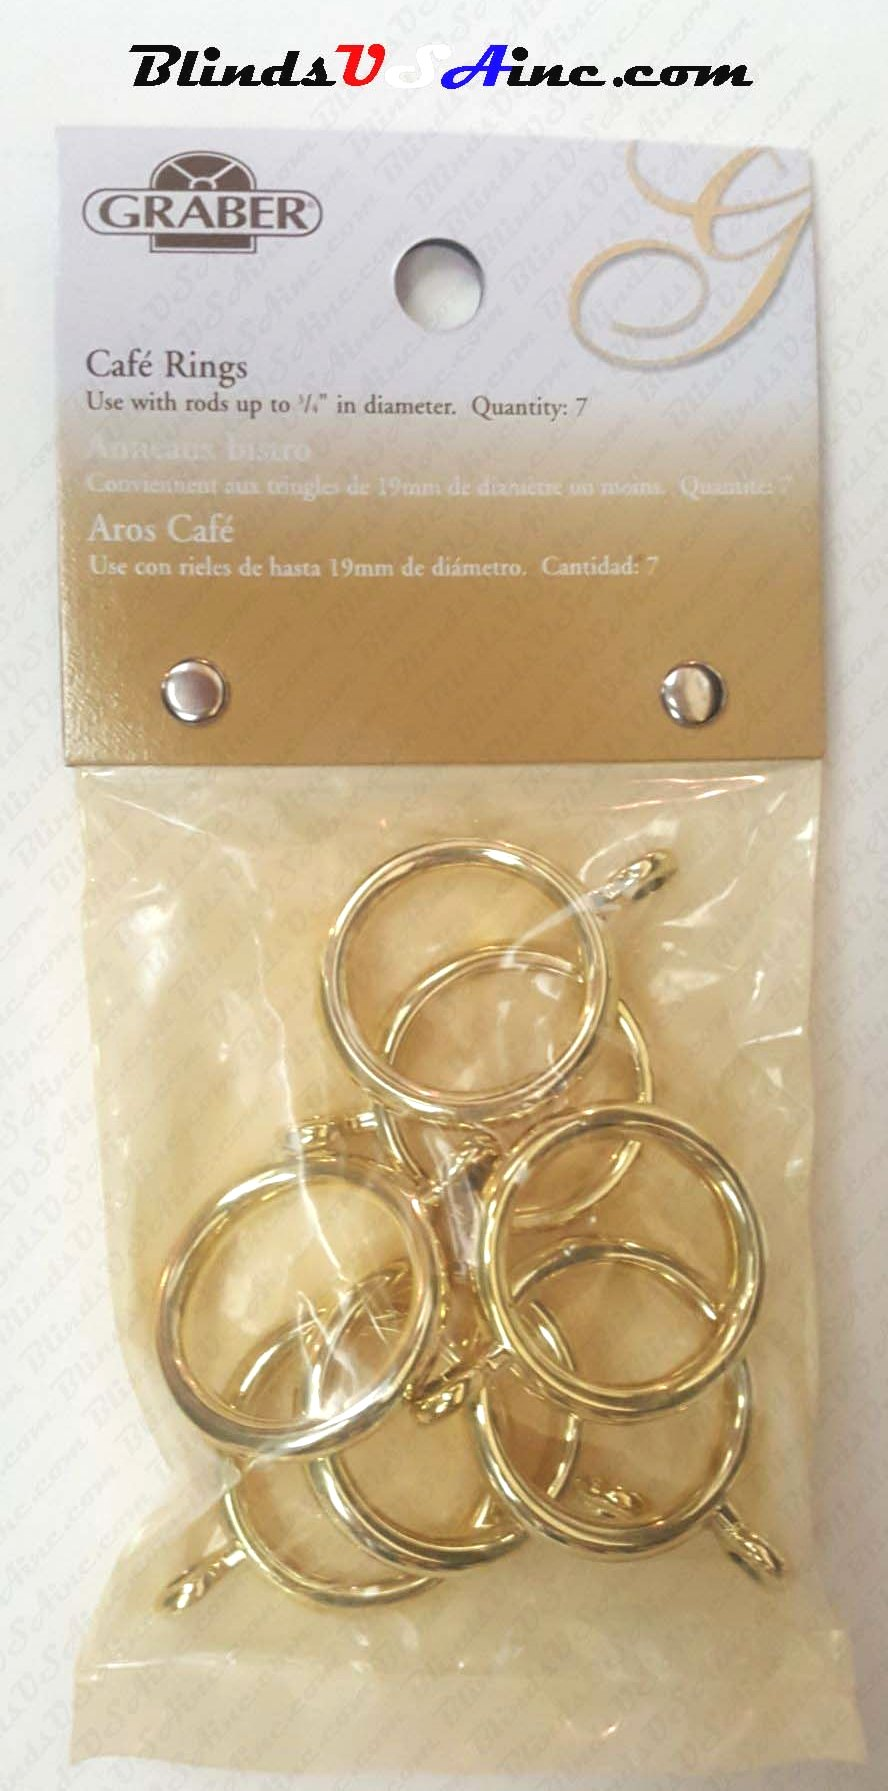 "Graber 3/4"" Cafe' Rings with Eyelet, finish brass, pack of 7, Part # 5-840-8"